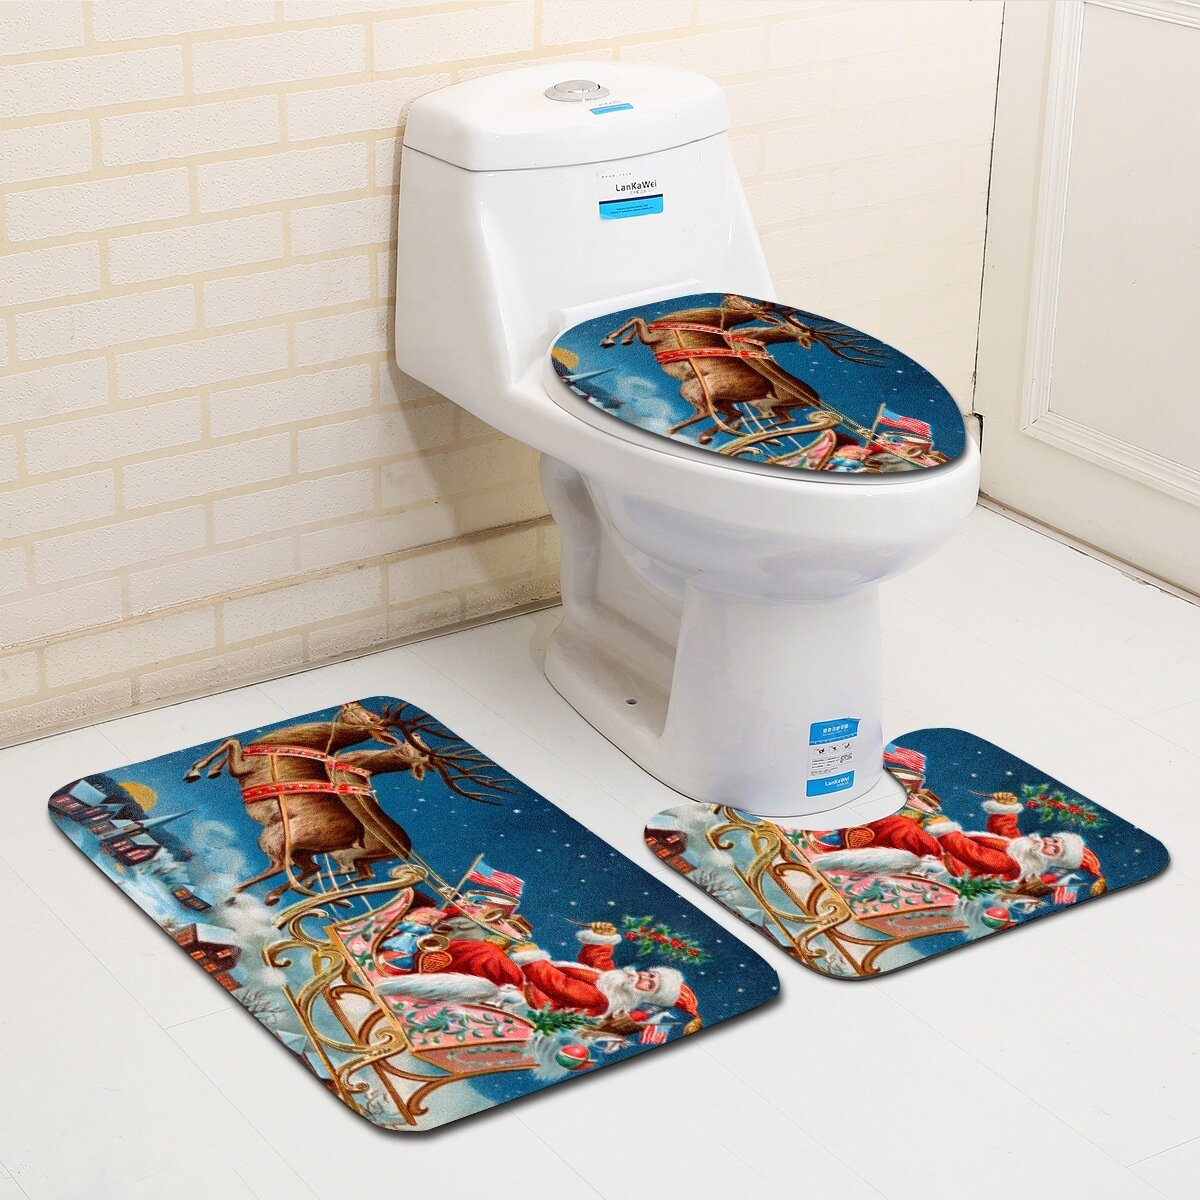 Marvelous Washable Bathroom Toilet Seat Covers Bathroom Carpet Anti Slip Bathroom Mat Set Bath Floor Mats Gmtry Best Dining Table And Chair Ideas Images Gmtryco